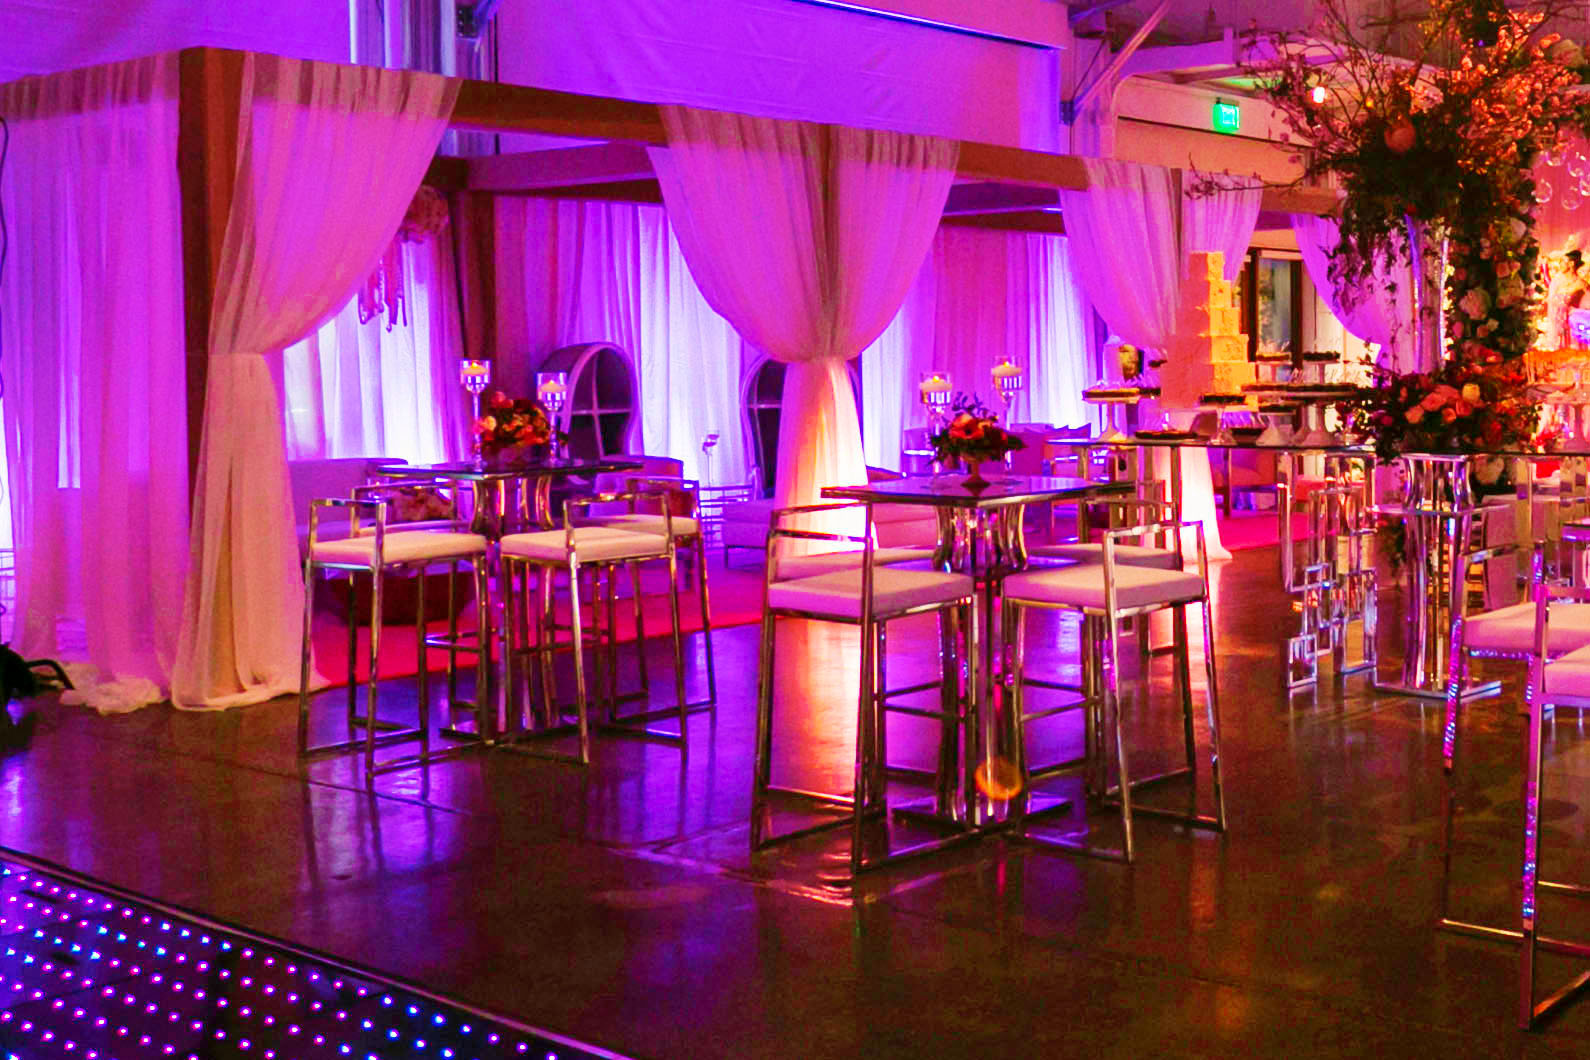 Draped cabanas with violet lighting